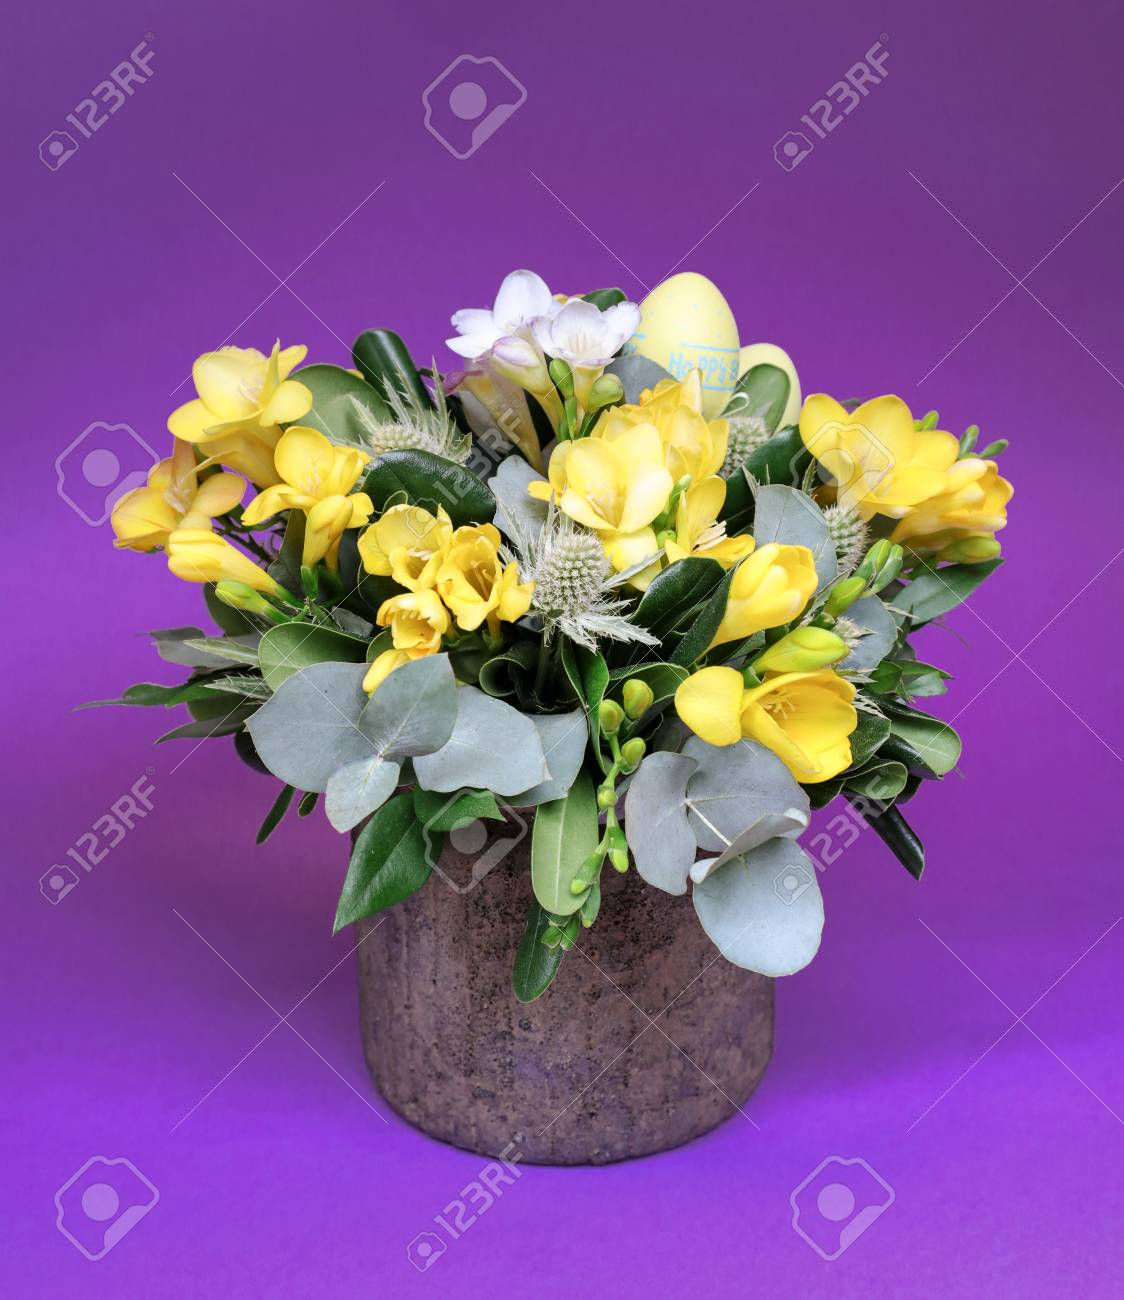 Festive flower arrangement of yellow and white freesia flowers festive flower arrangement of yellow and white freesia flowers and other plants with easter eggs decorated izmirmasajfo